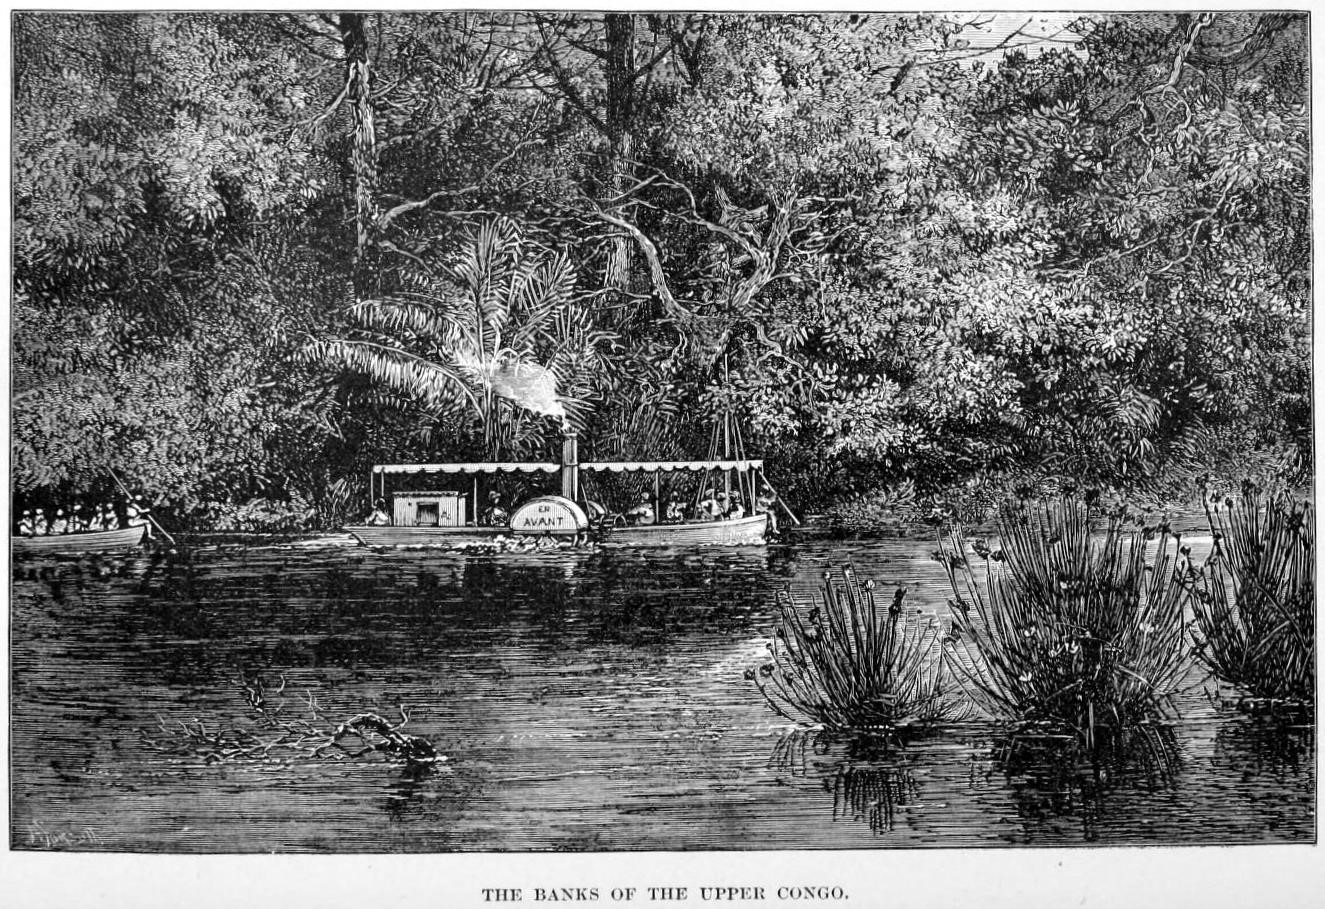 The Banks of the Upper Congo. H.M. Stanley,     The Congo and the Founding of its Free State; A Story of Work And Exploration   (New York: Harper & Brothers, 1885).